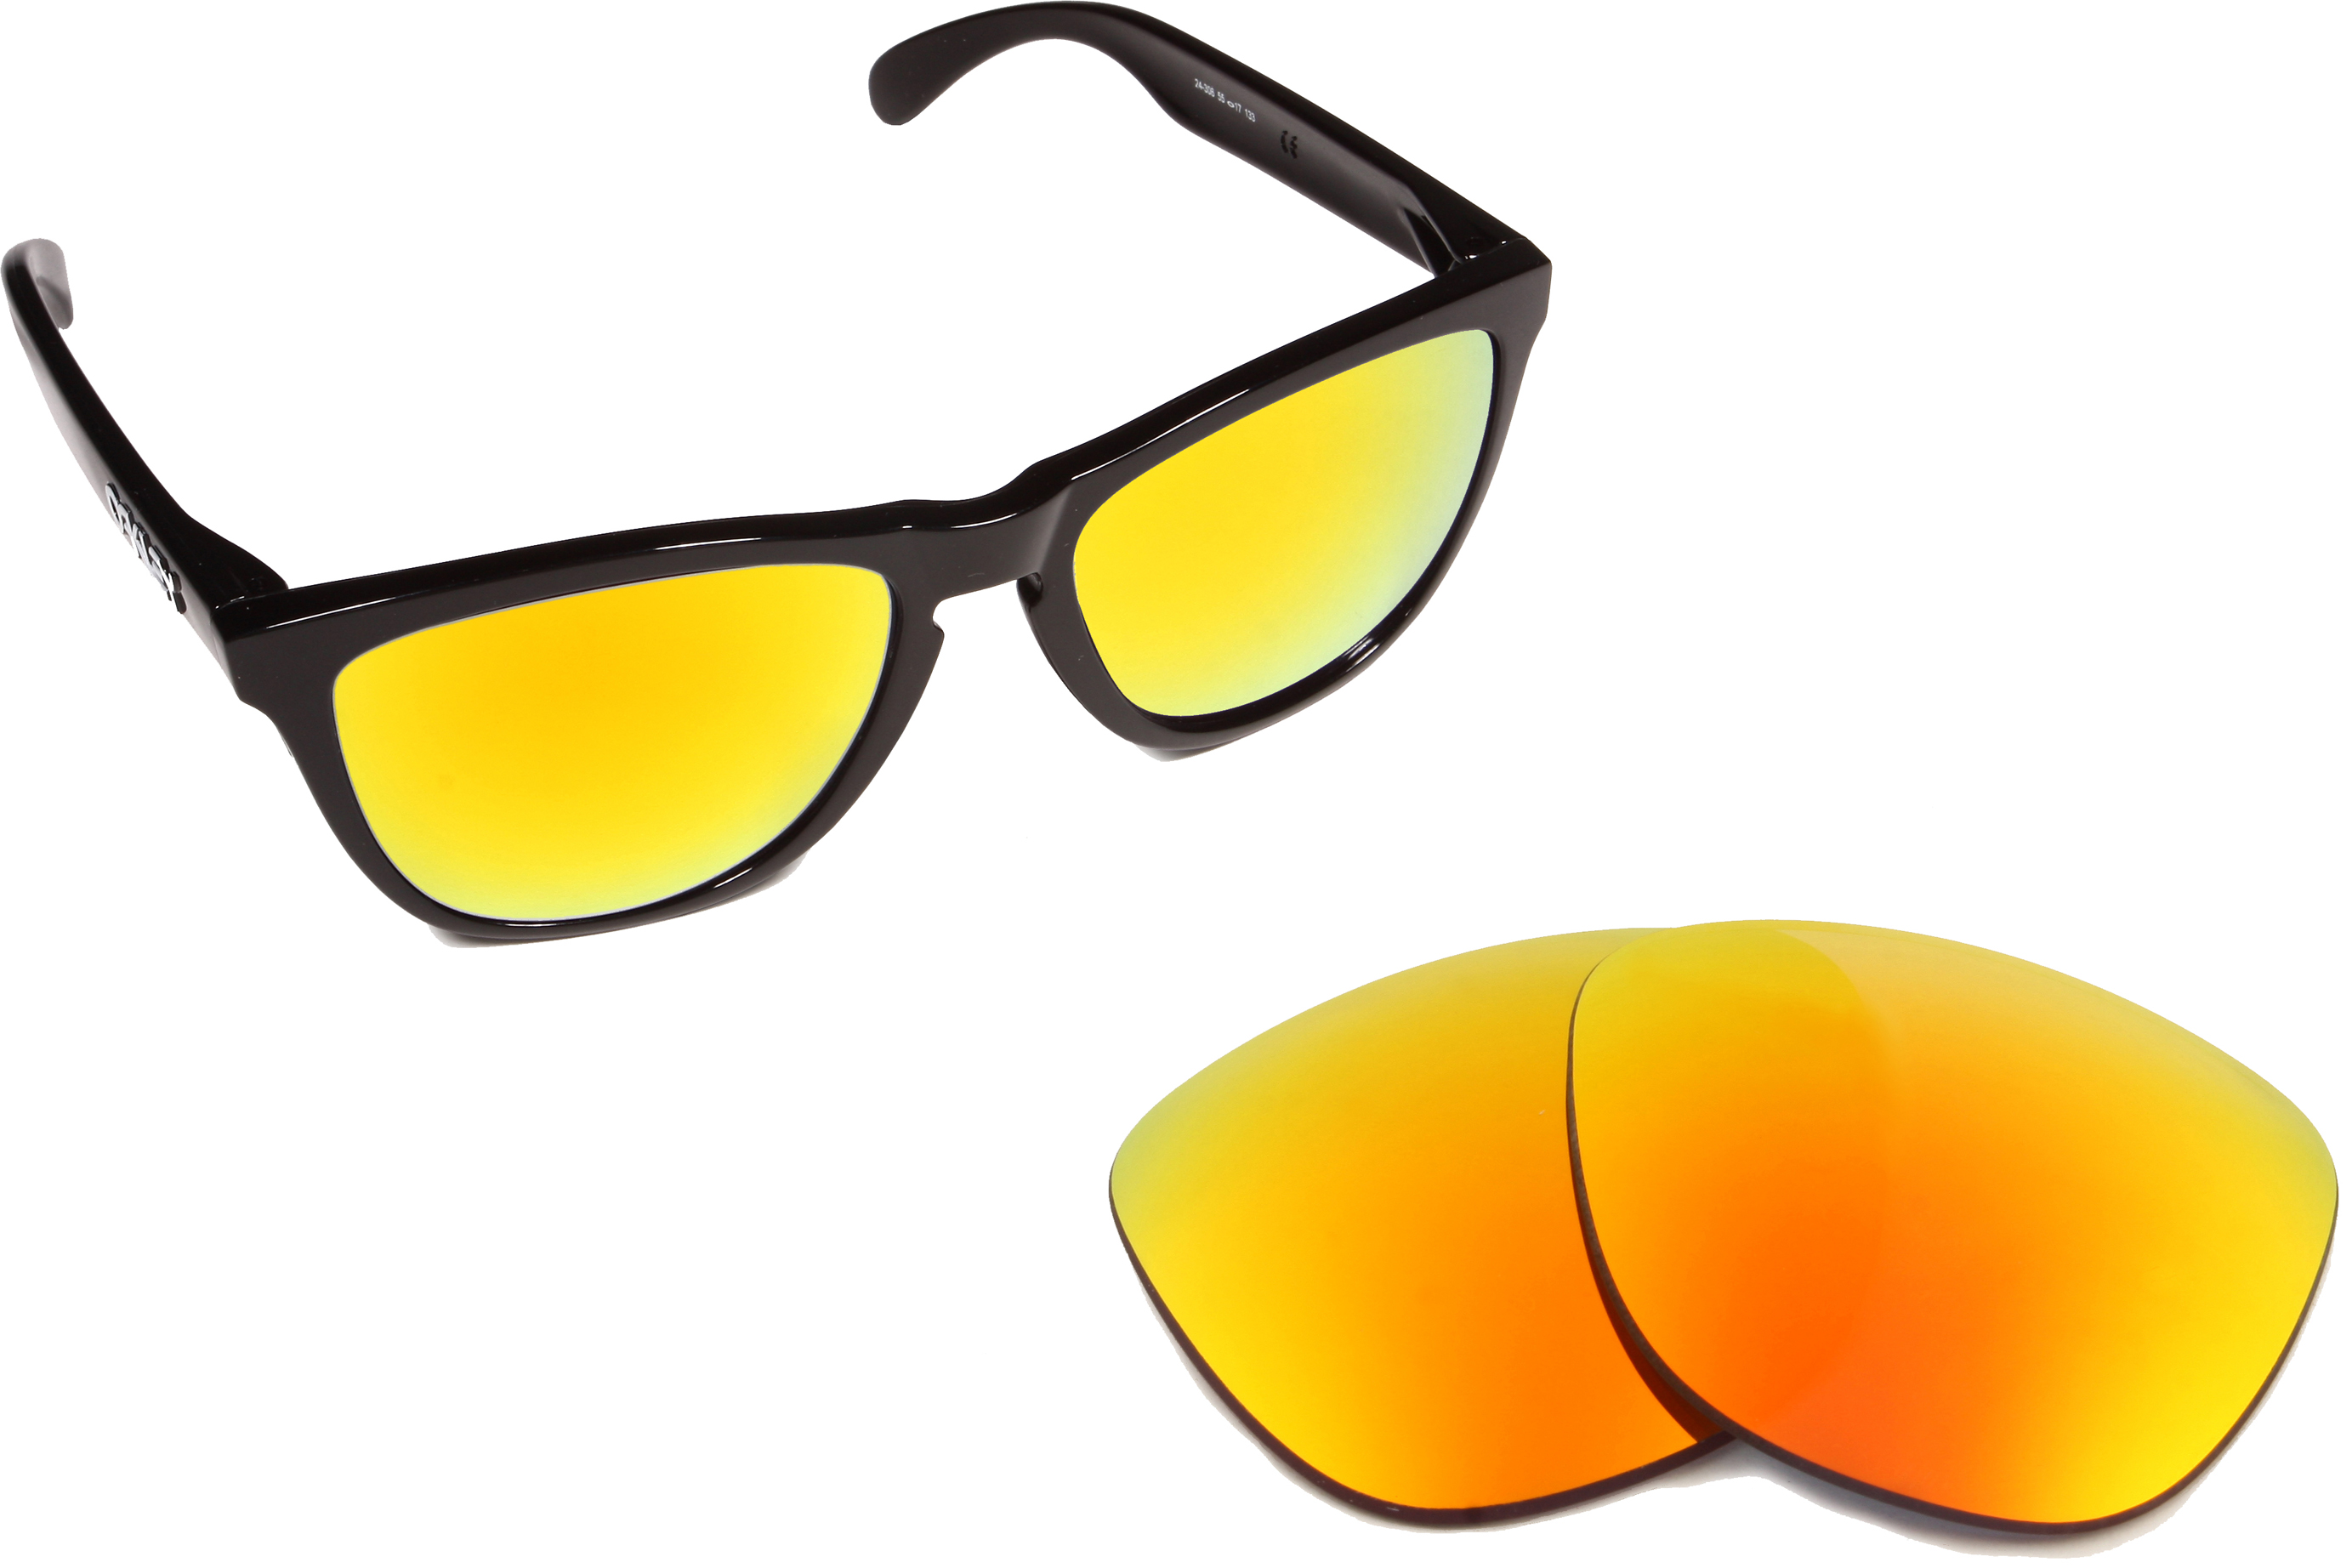 d2b8ccbab4c63 Frogskins Replacement Lenses Yellow Mirror by SEEK fits OAKLEY Sunglasses